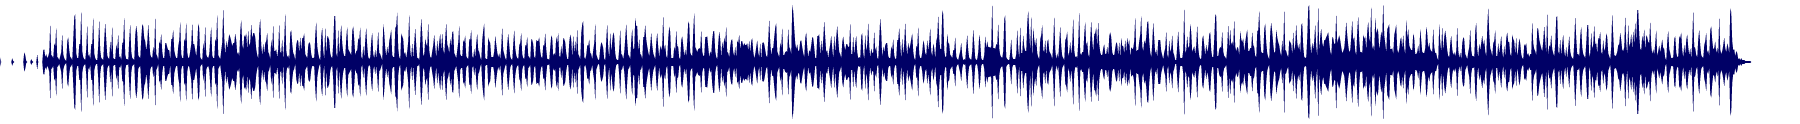 waveform of track #71520